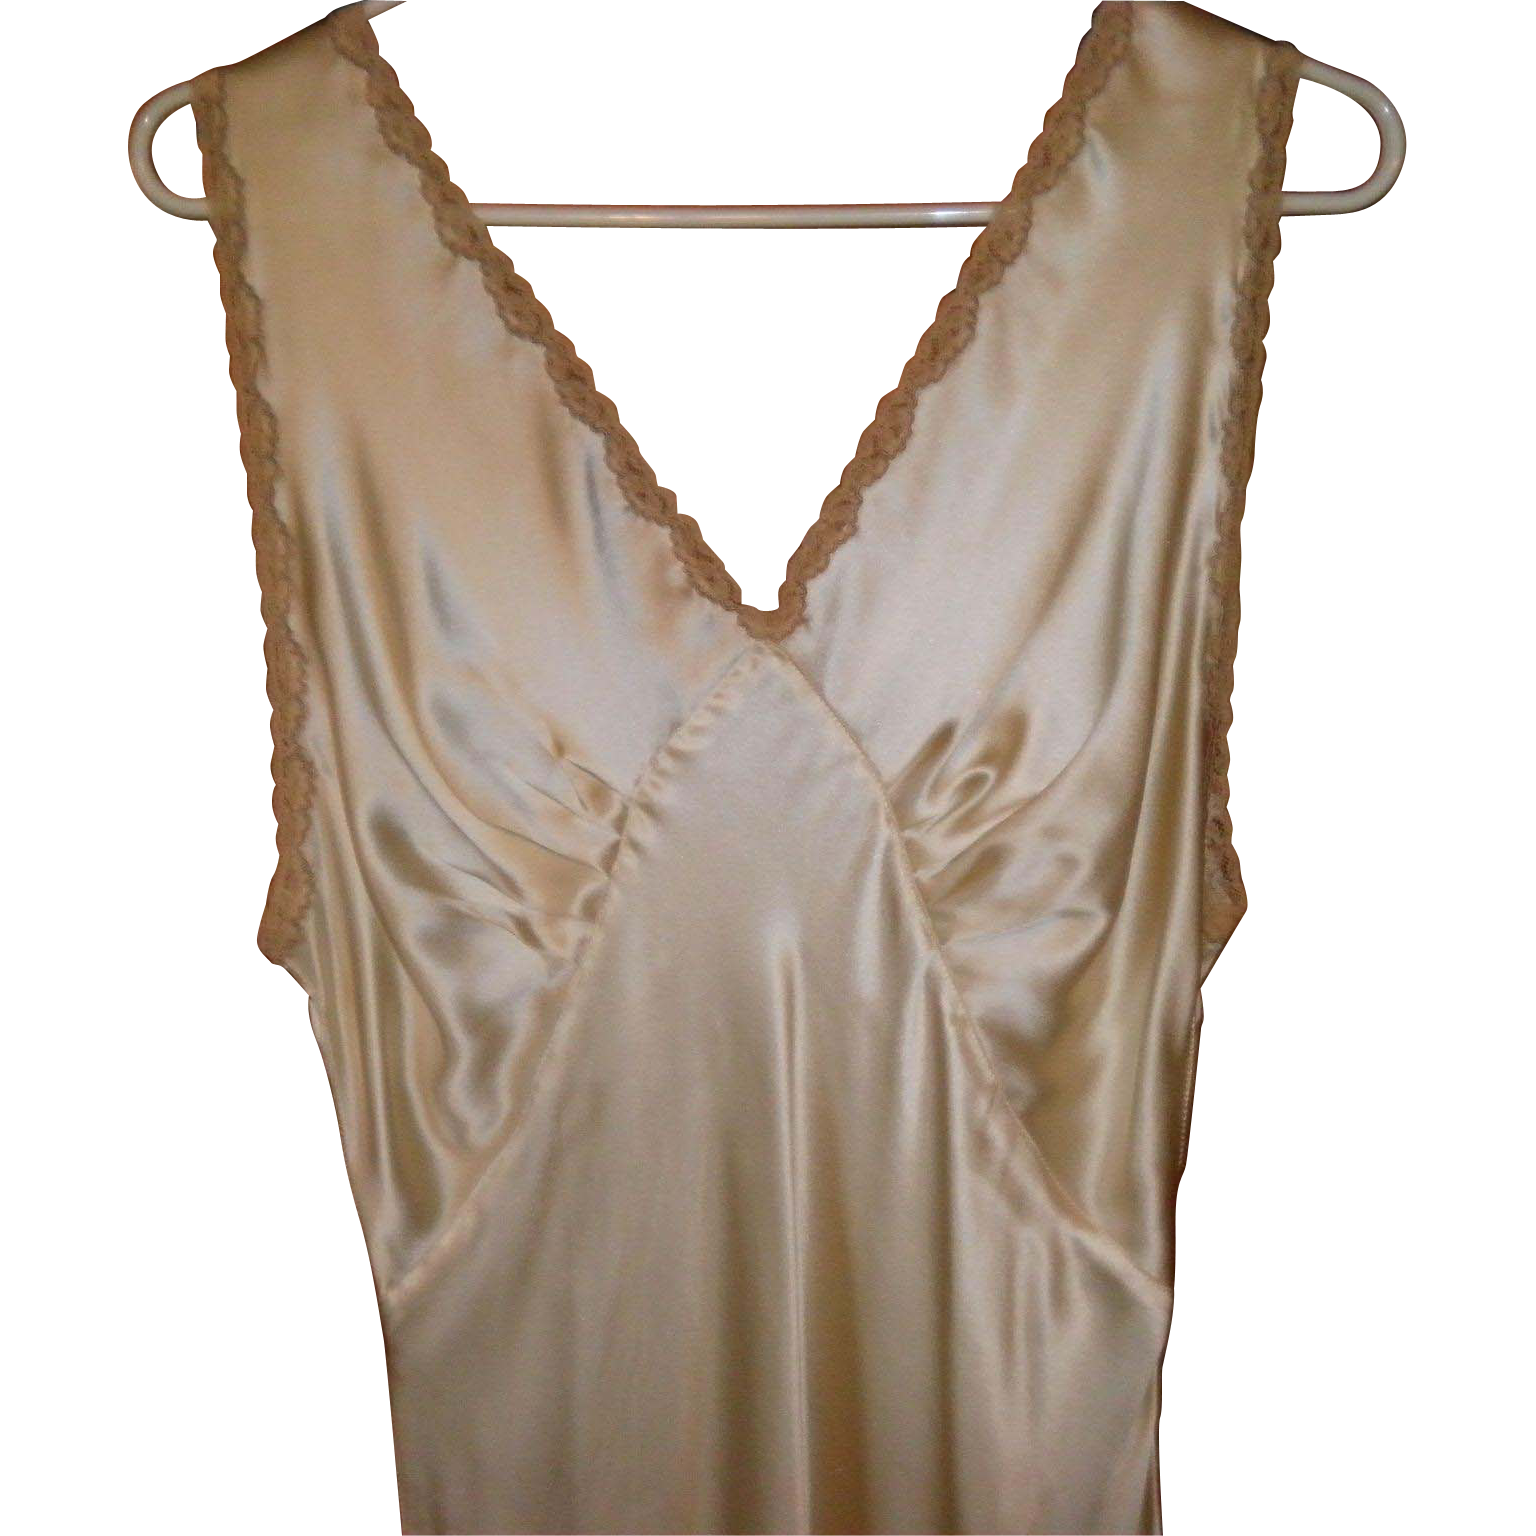 Vintage 1930's 1940's Floor Length Satiny Nightgown Size S